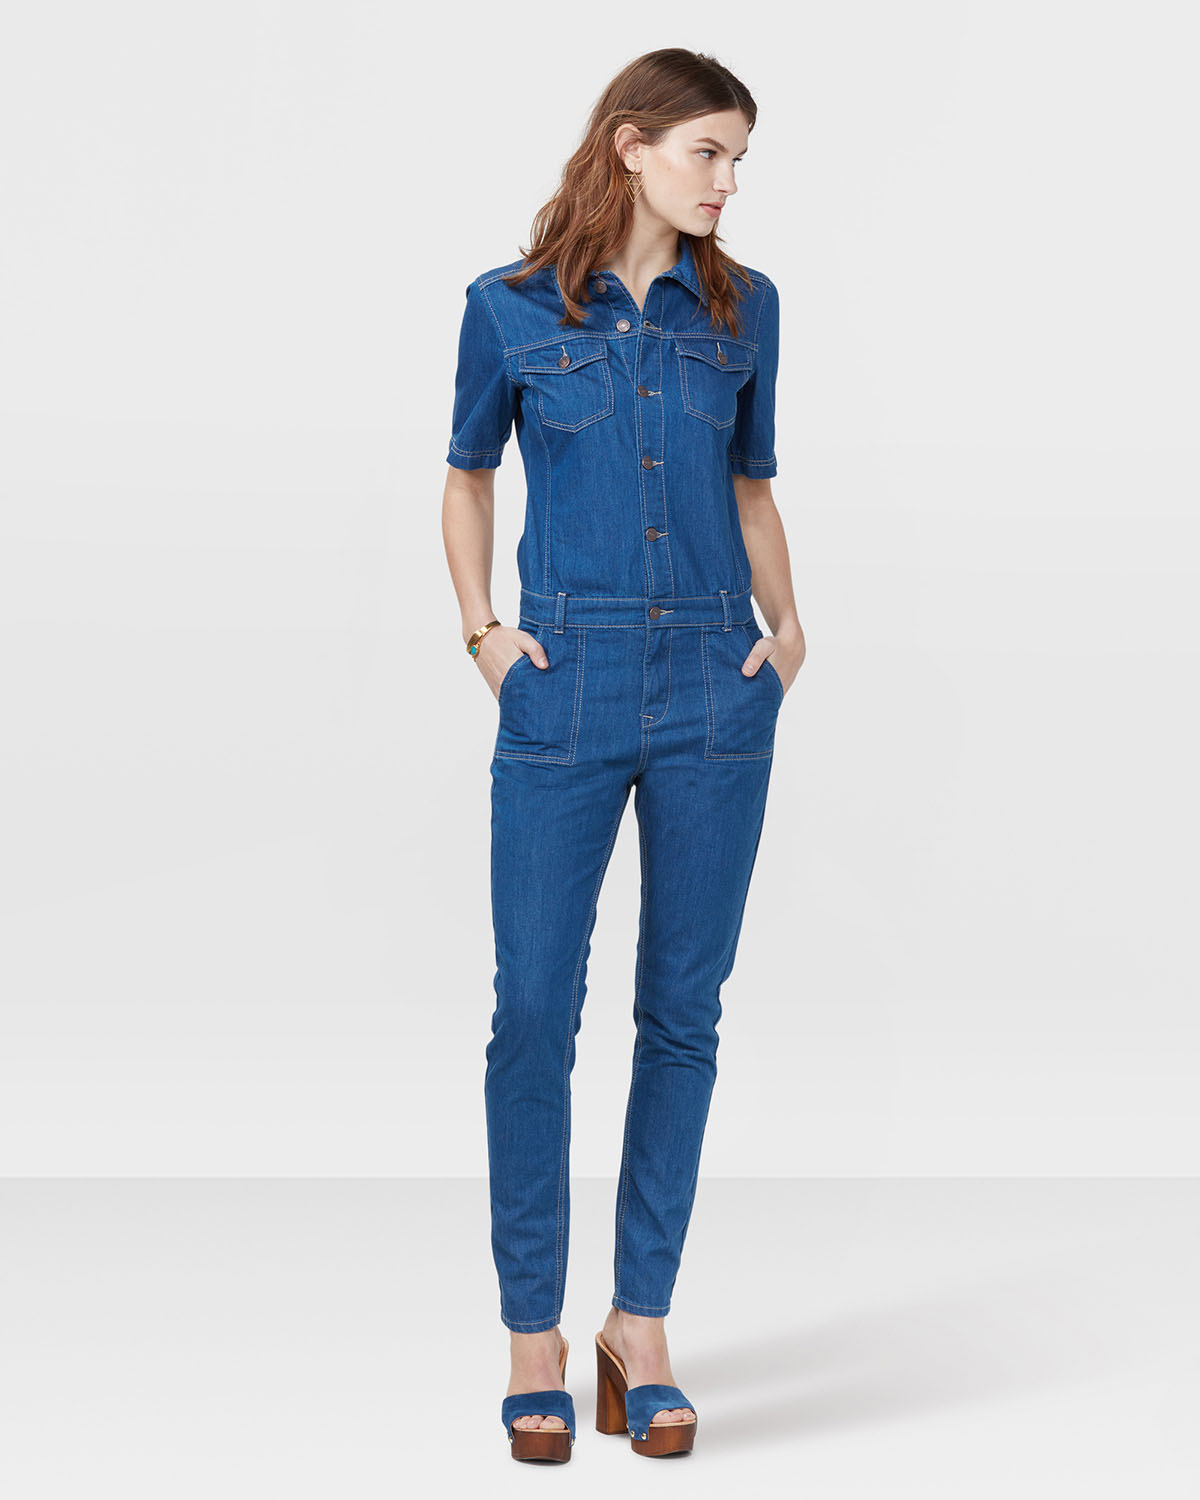 new product 64eab d2938 DAMEN JEANS-OVERALL | 79165822 - WE Fashion